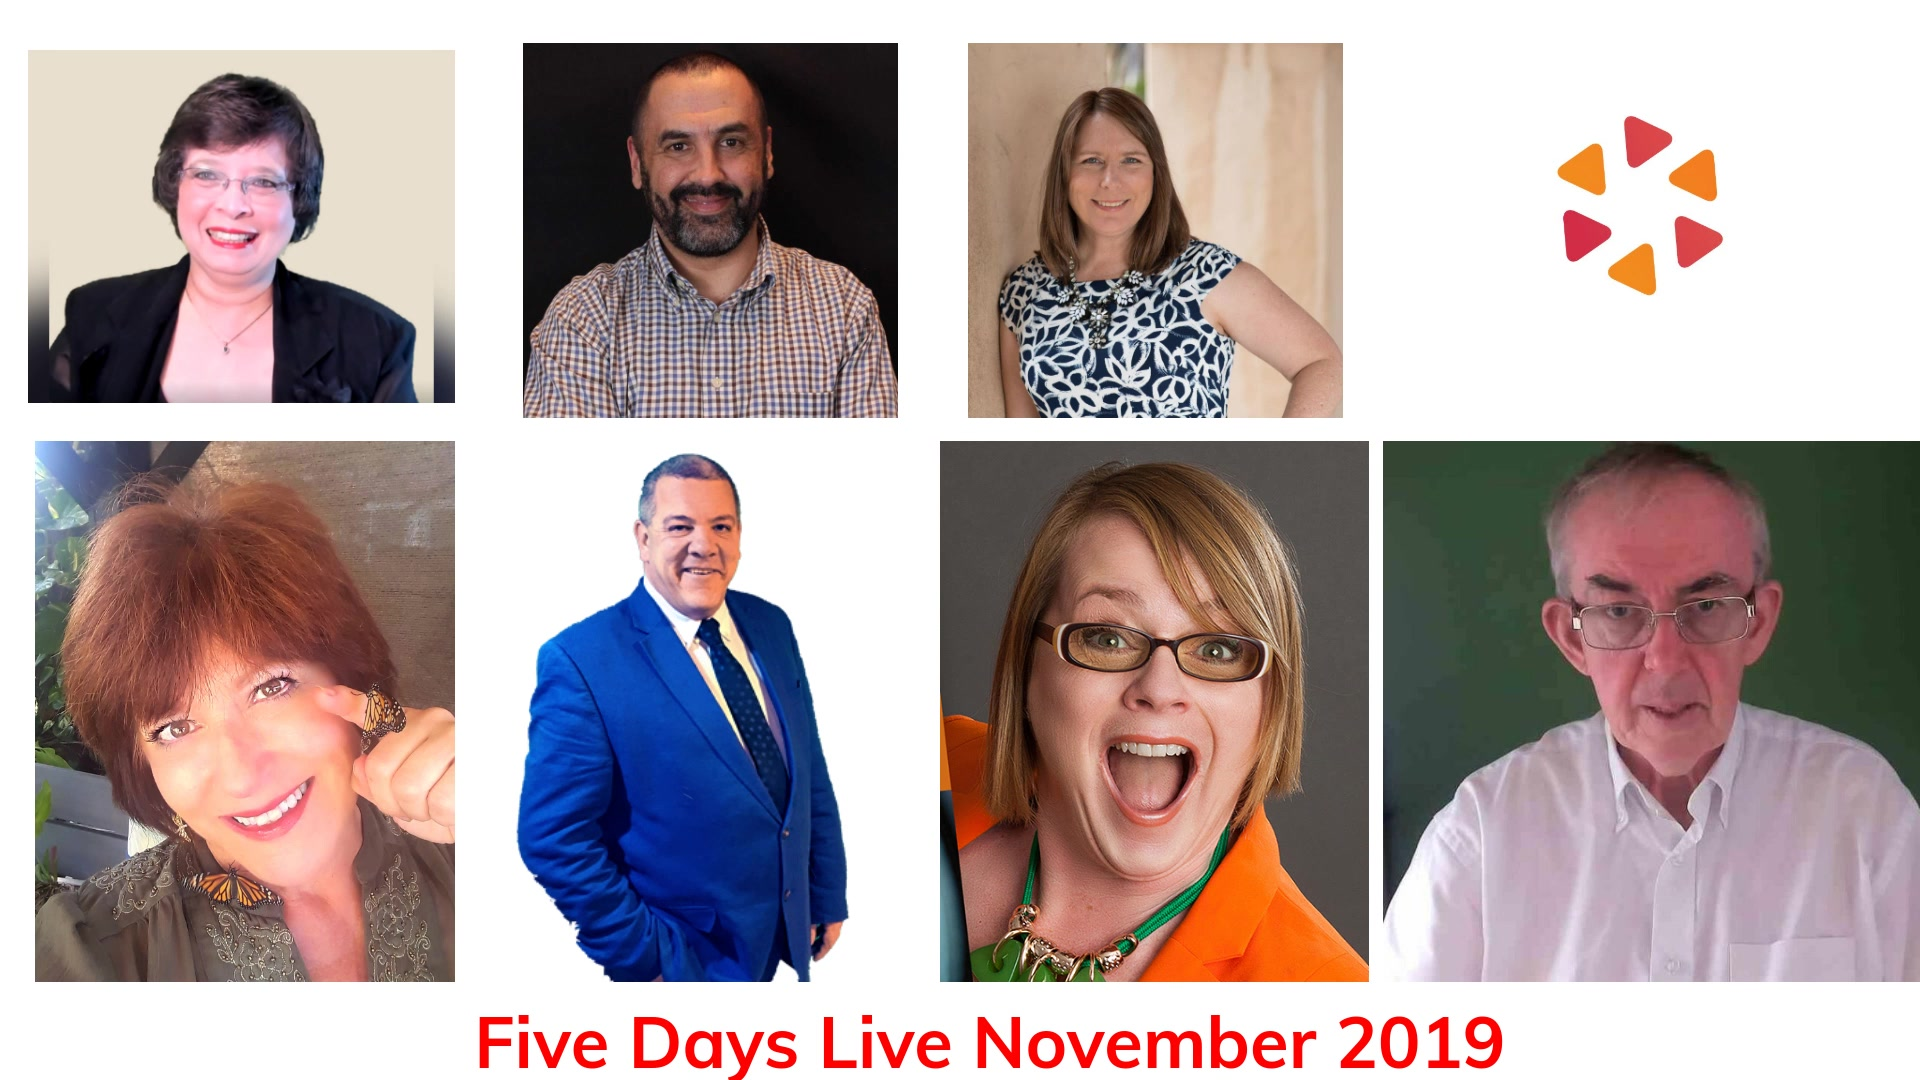 Five Days Live – free online training starts on Monday